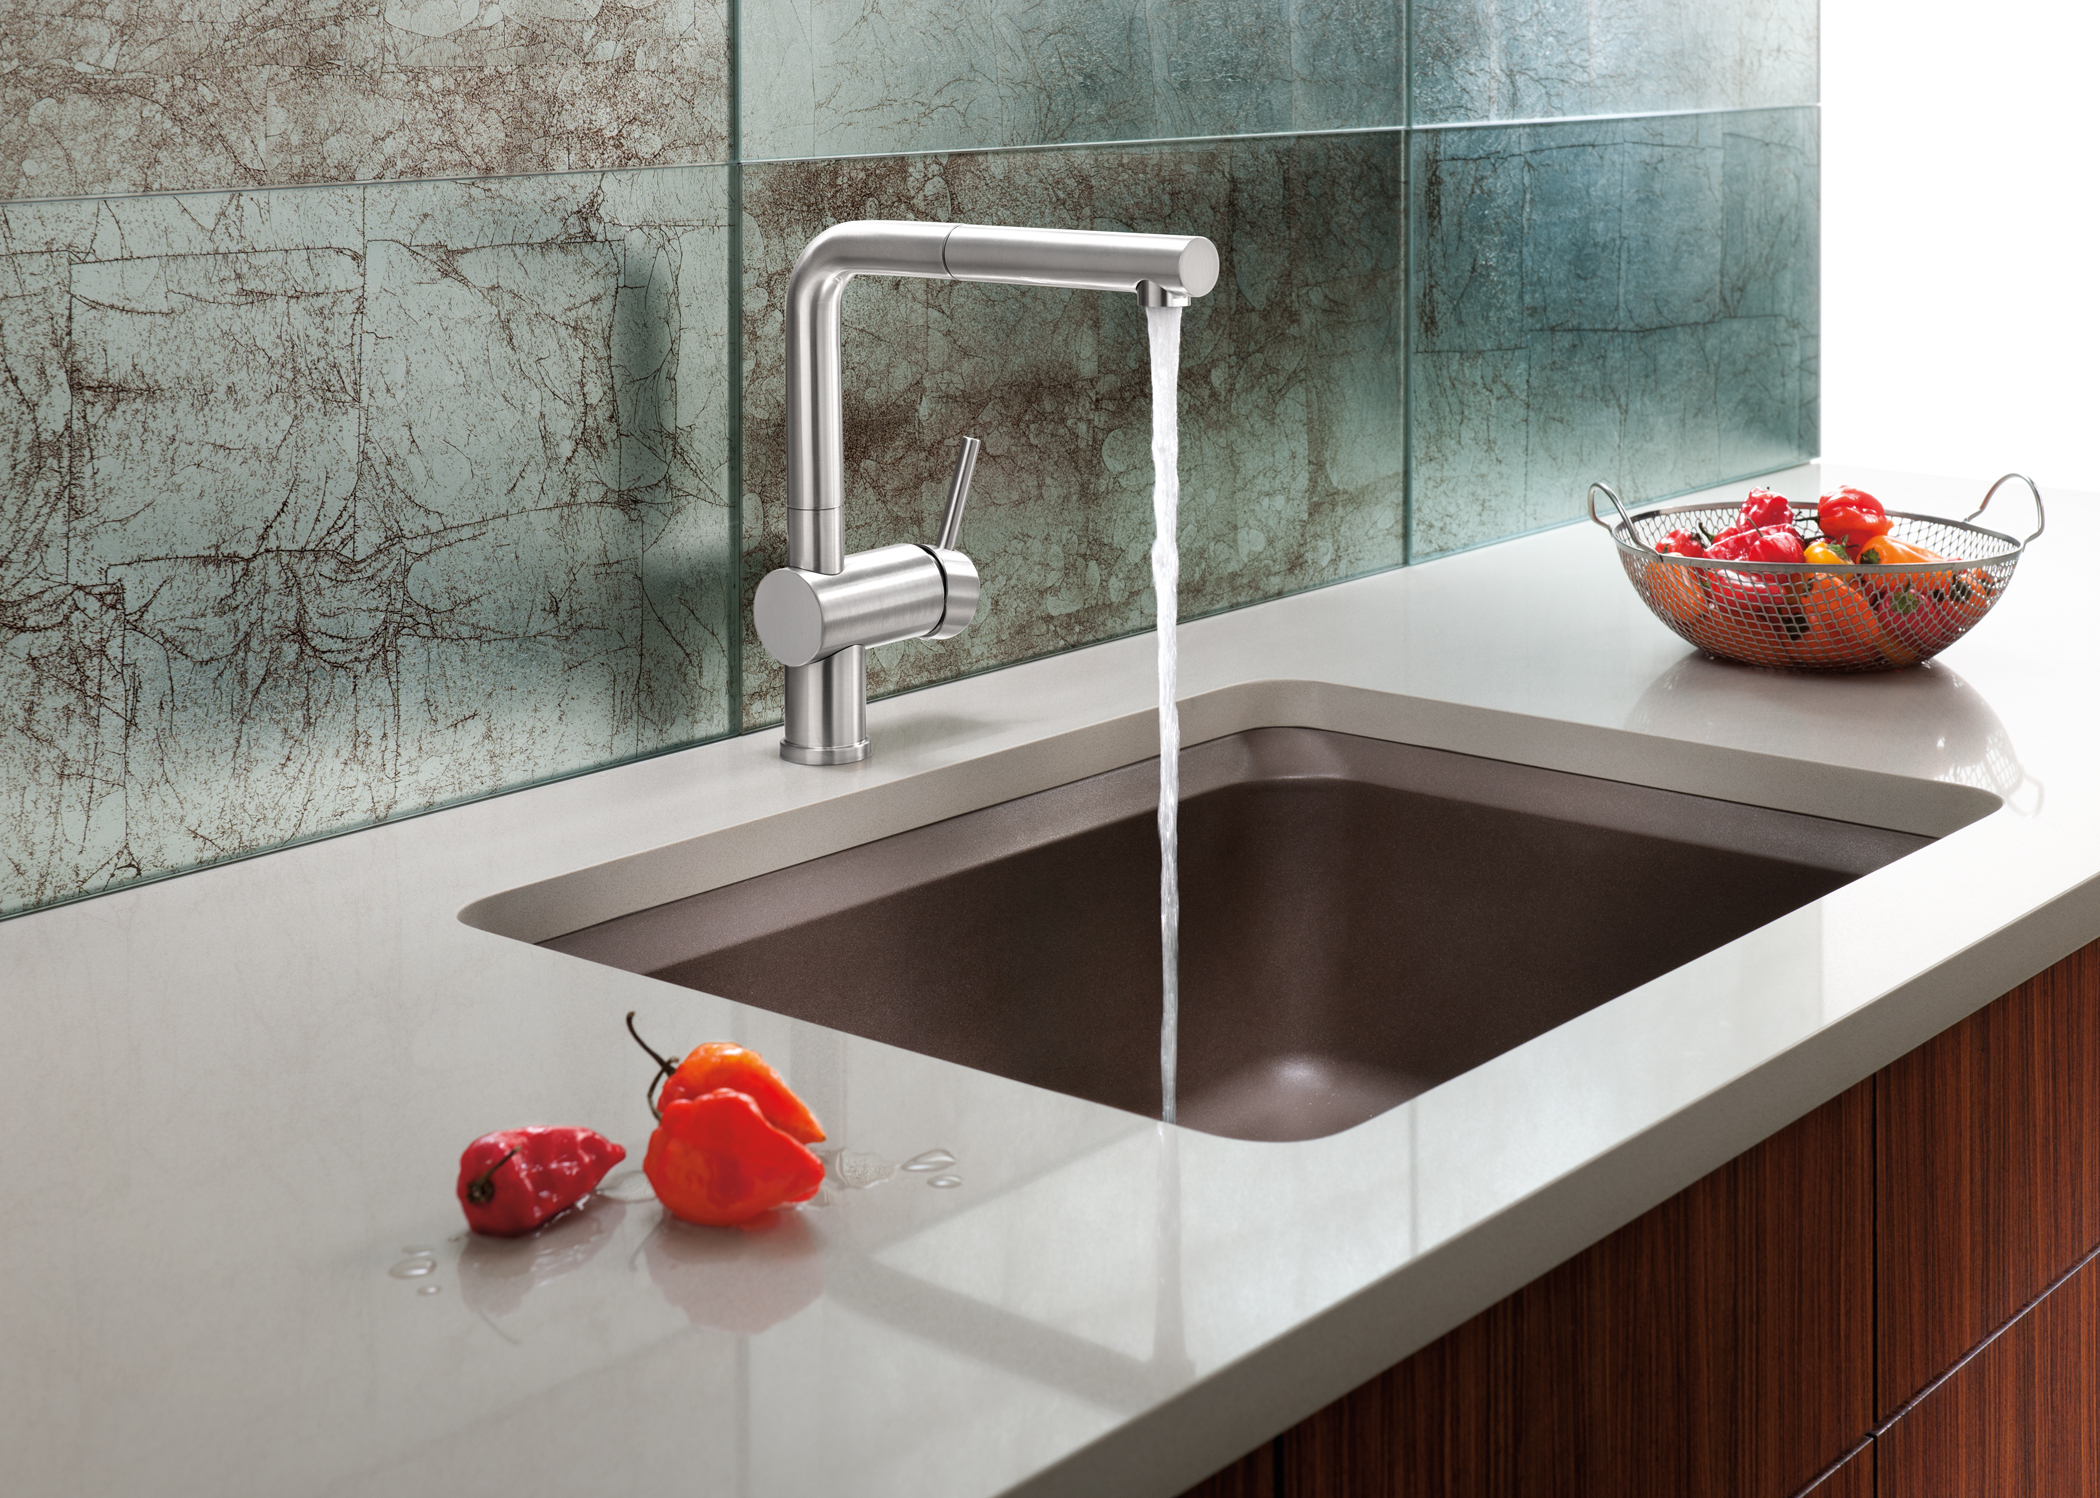 designer kitchen faucets refurbished table and chairs the new blanco silgranit ii vision sink